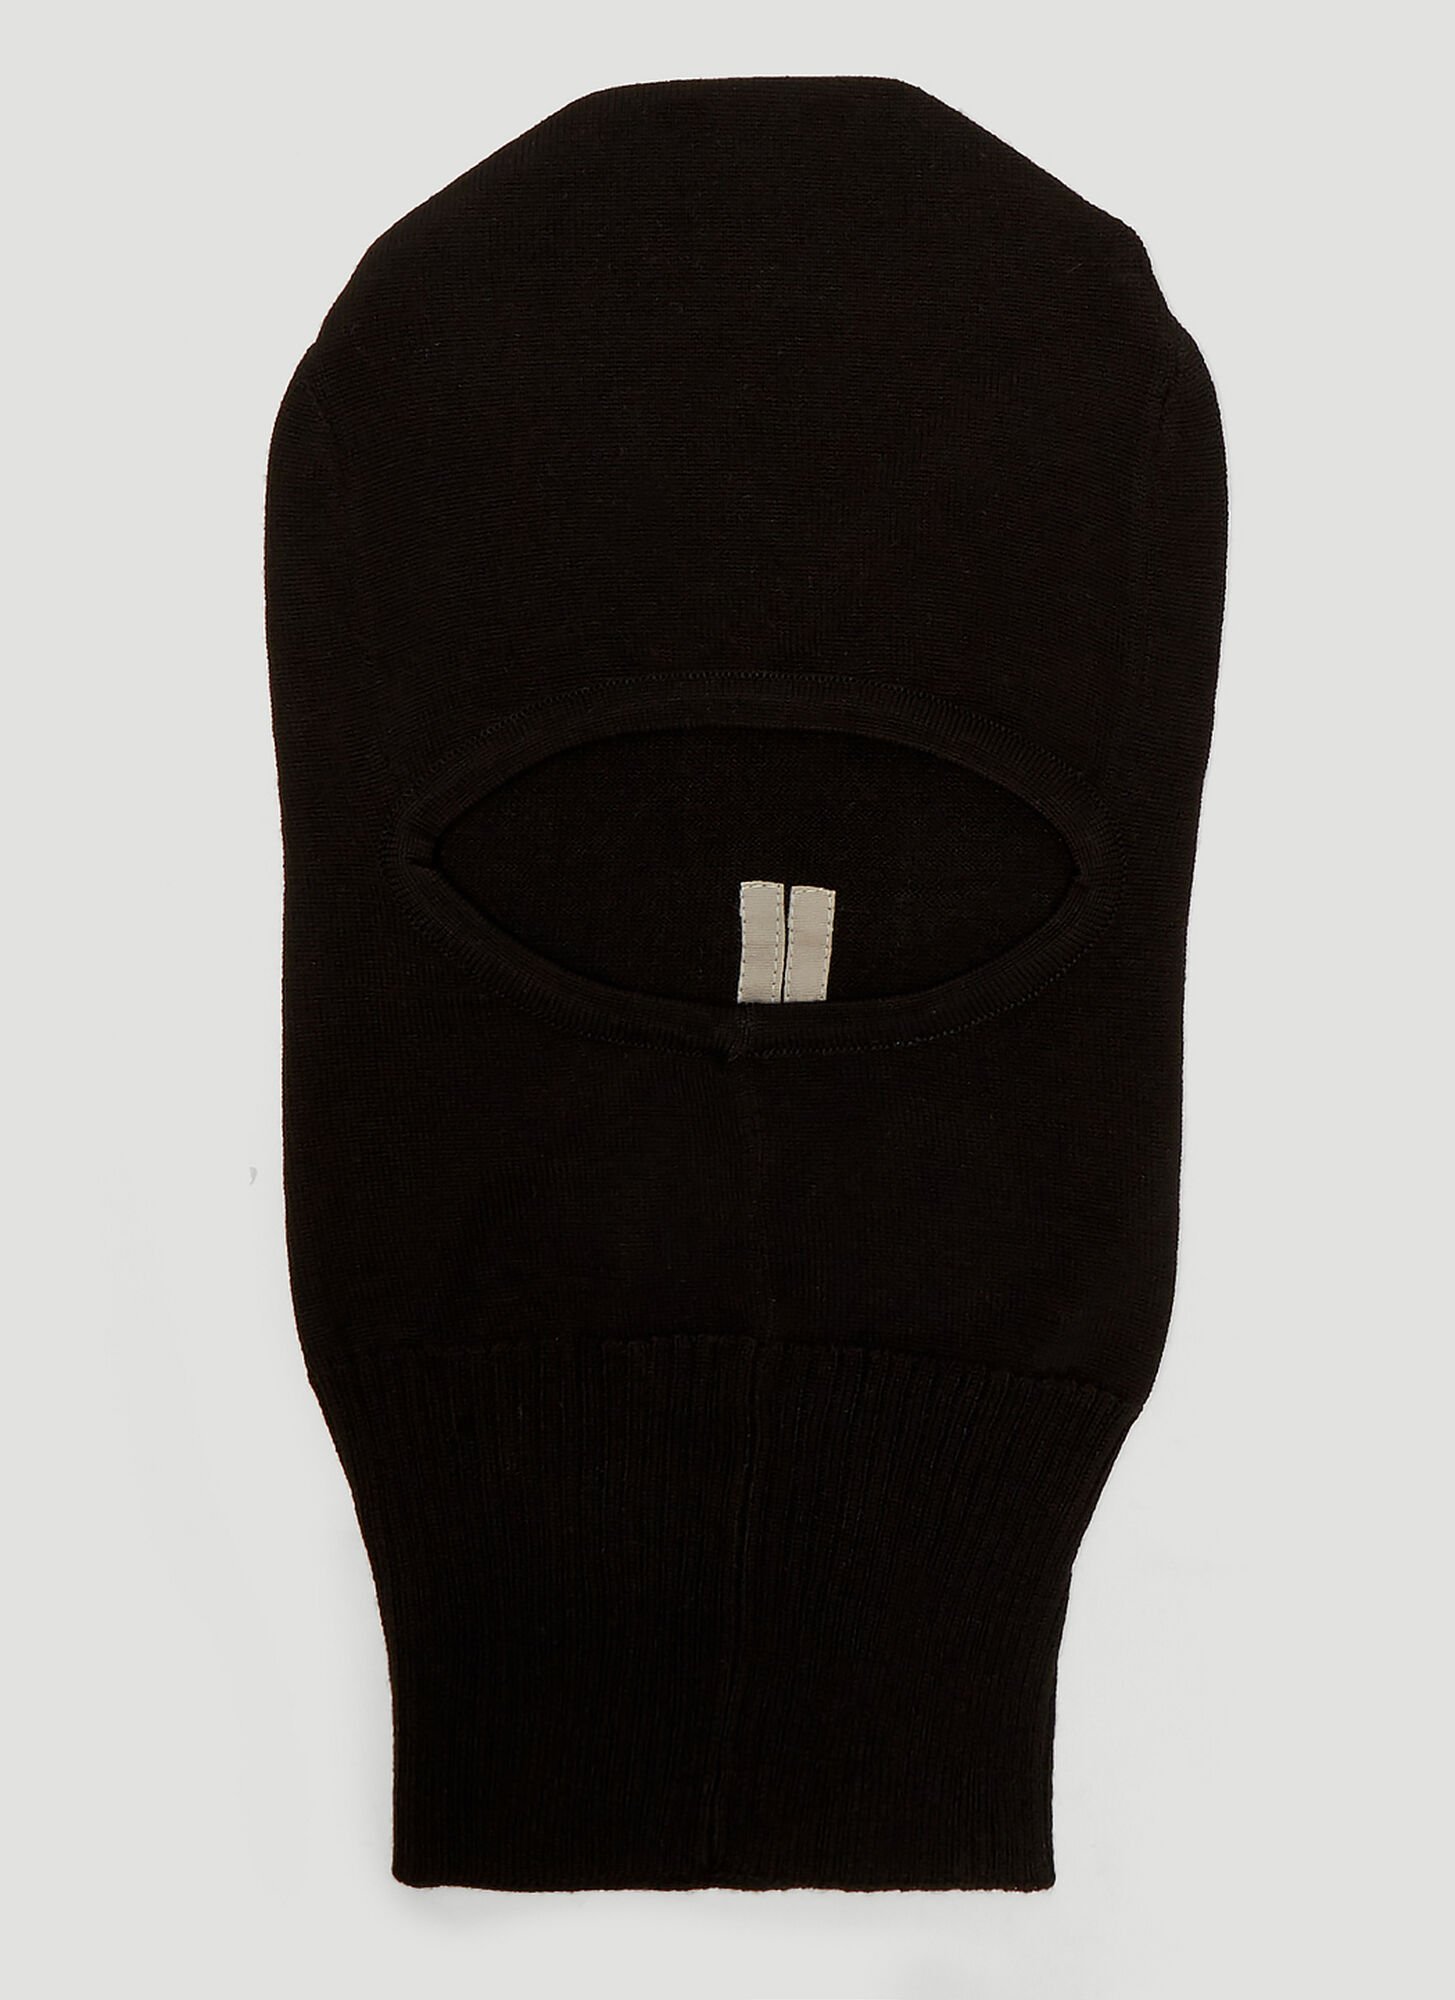 Rick Owens Knitted Balaclava in Black